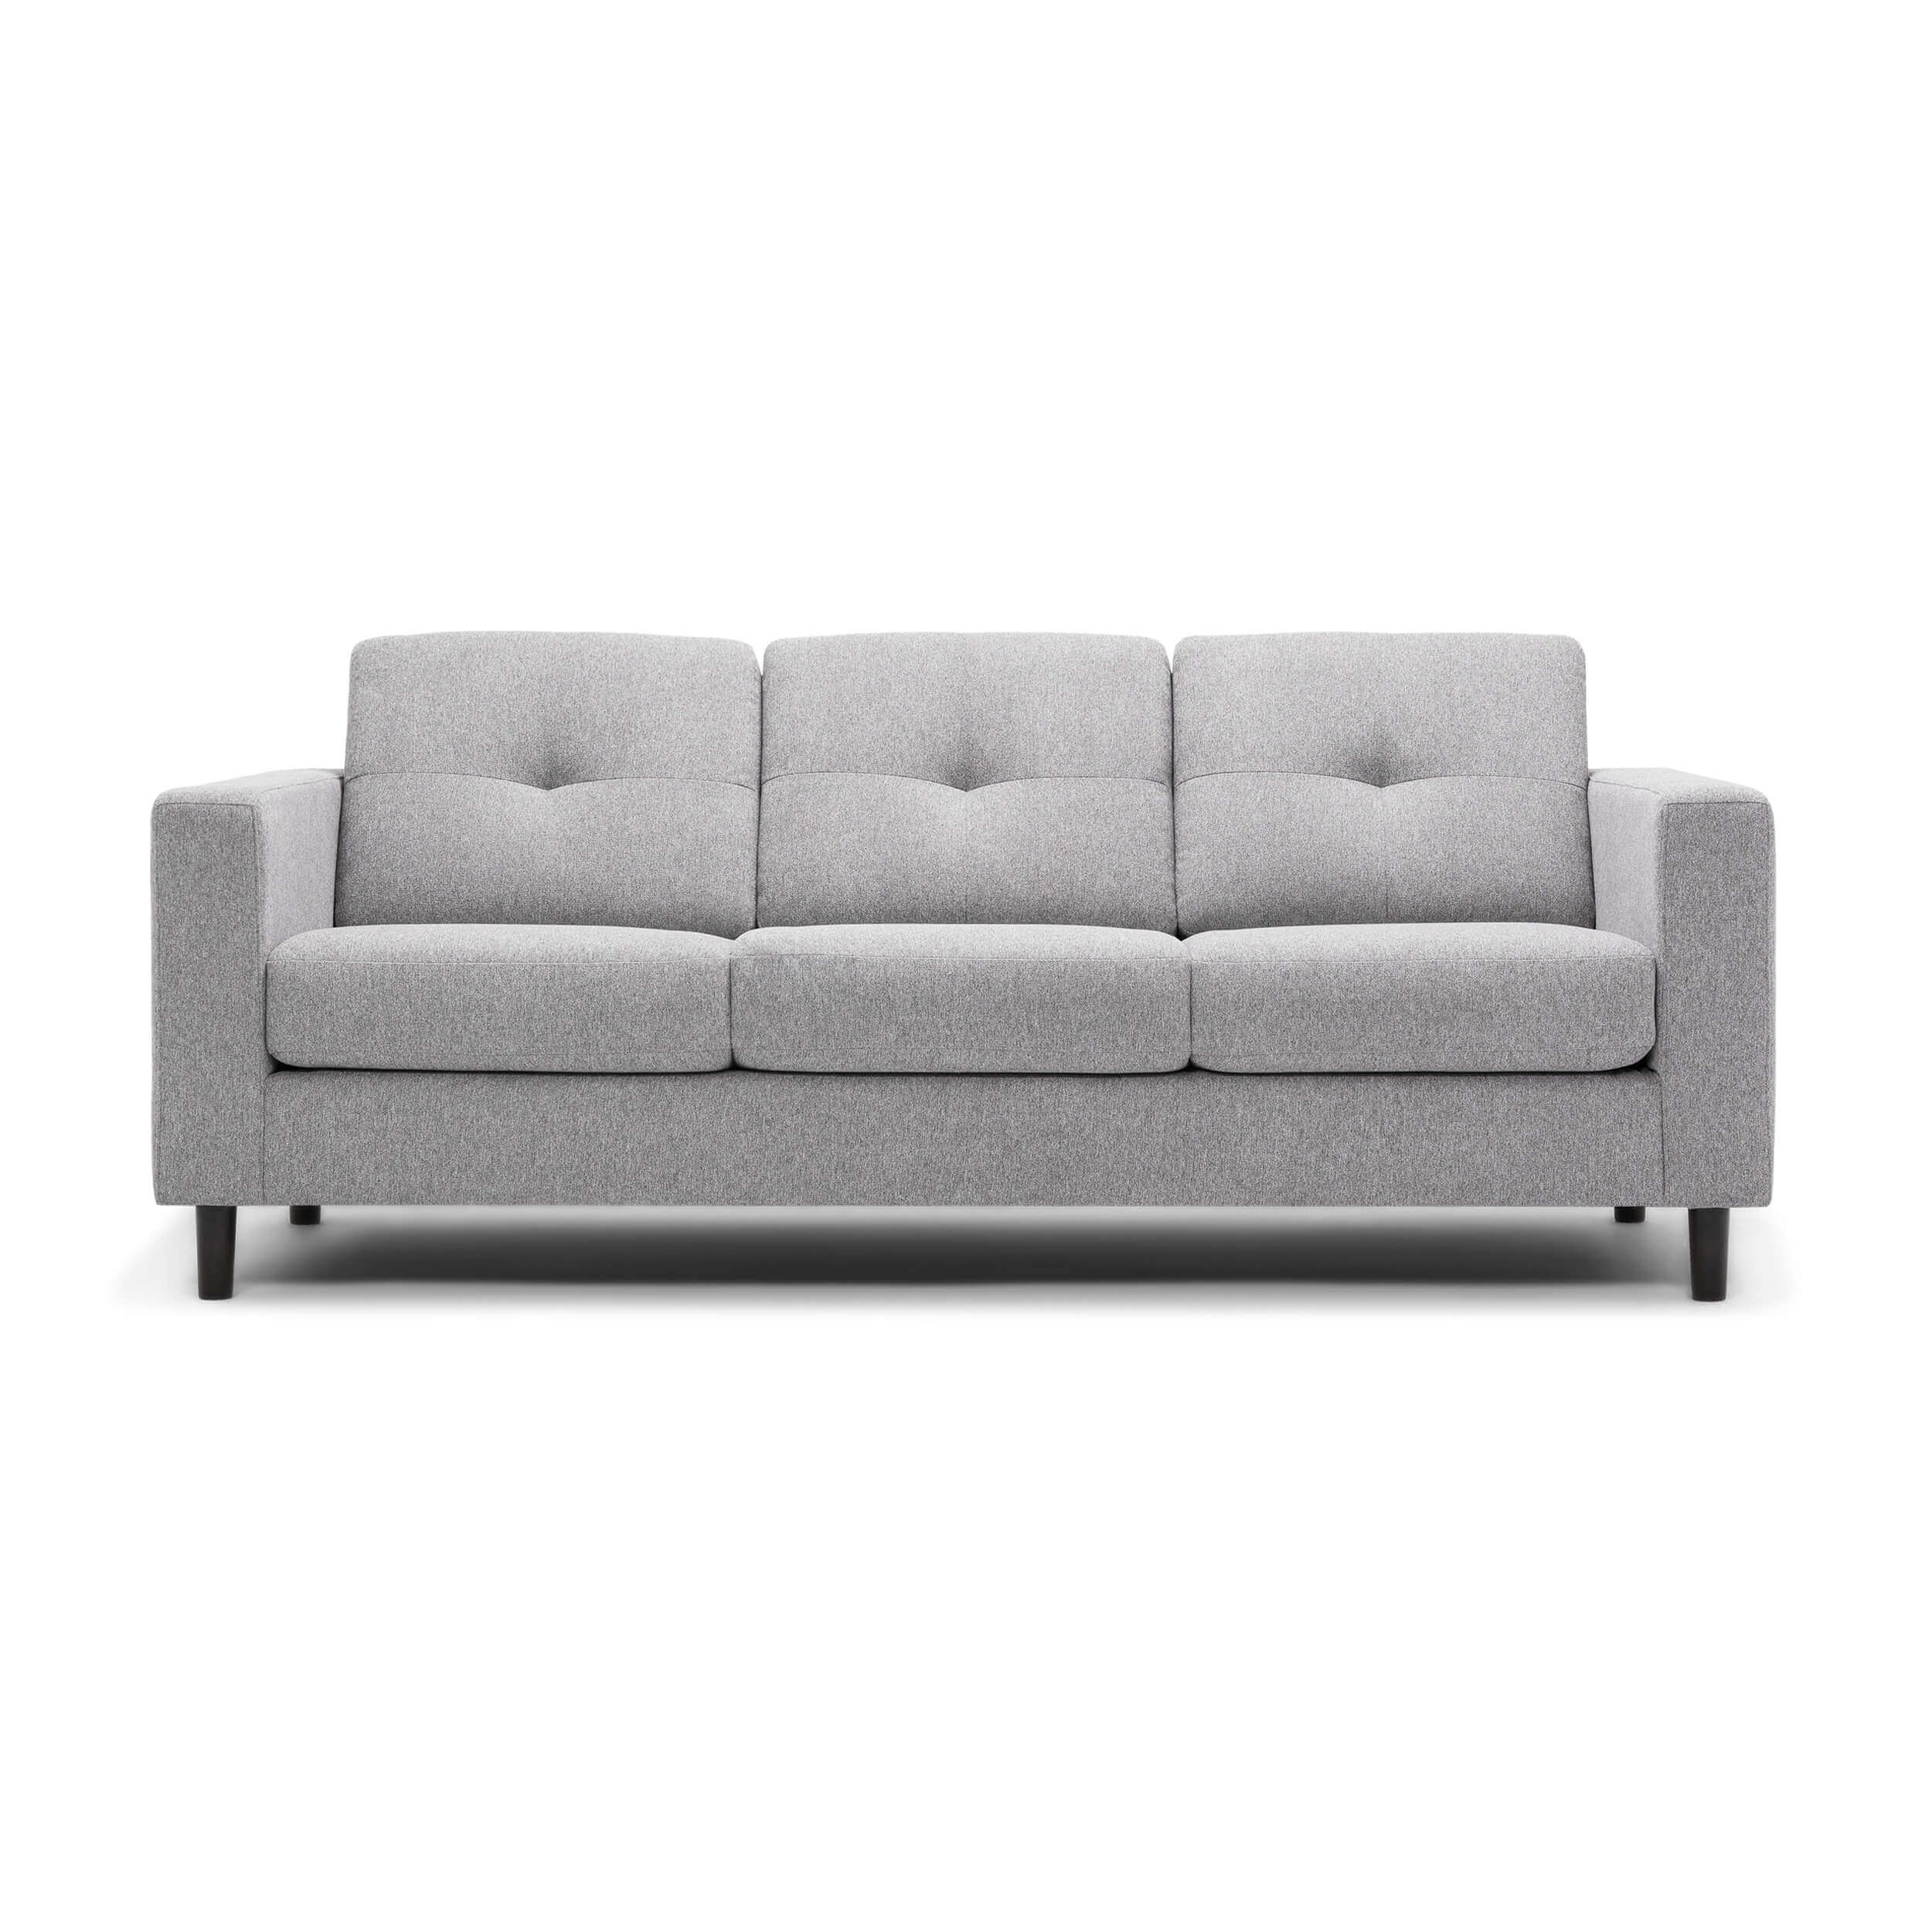 Sofa Bed For Sale Toronto Solo Sofa Fabric